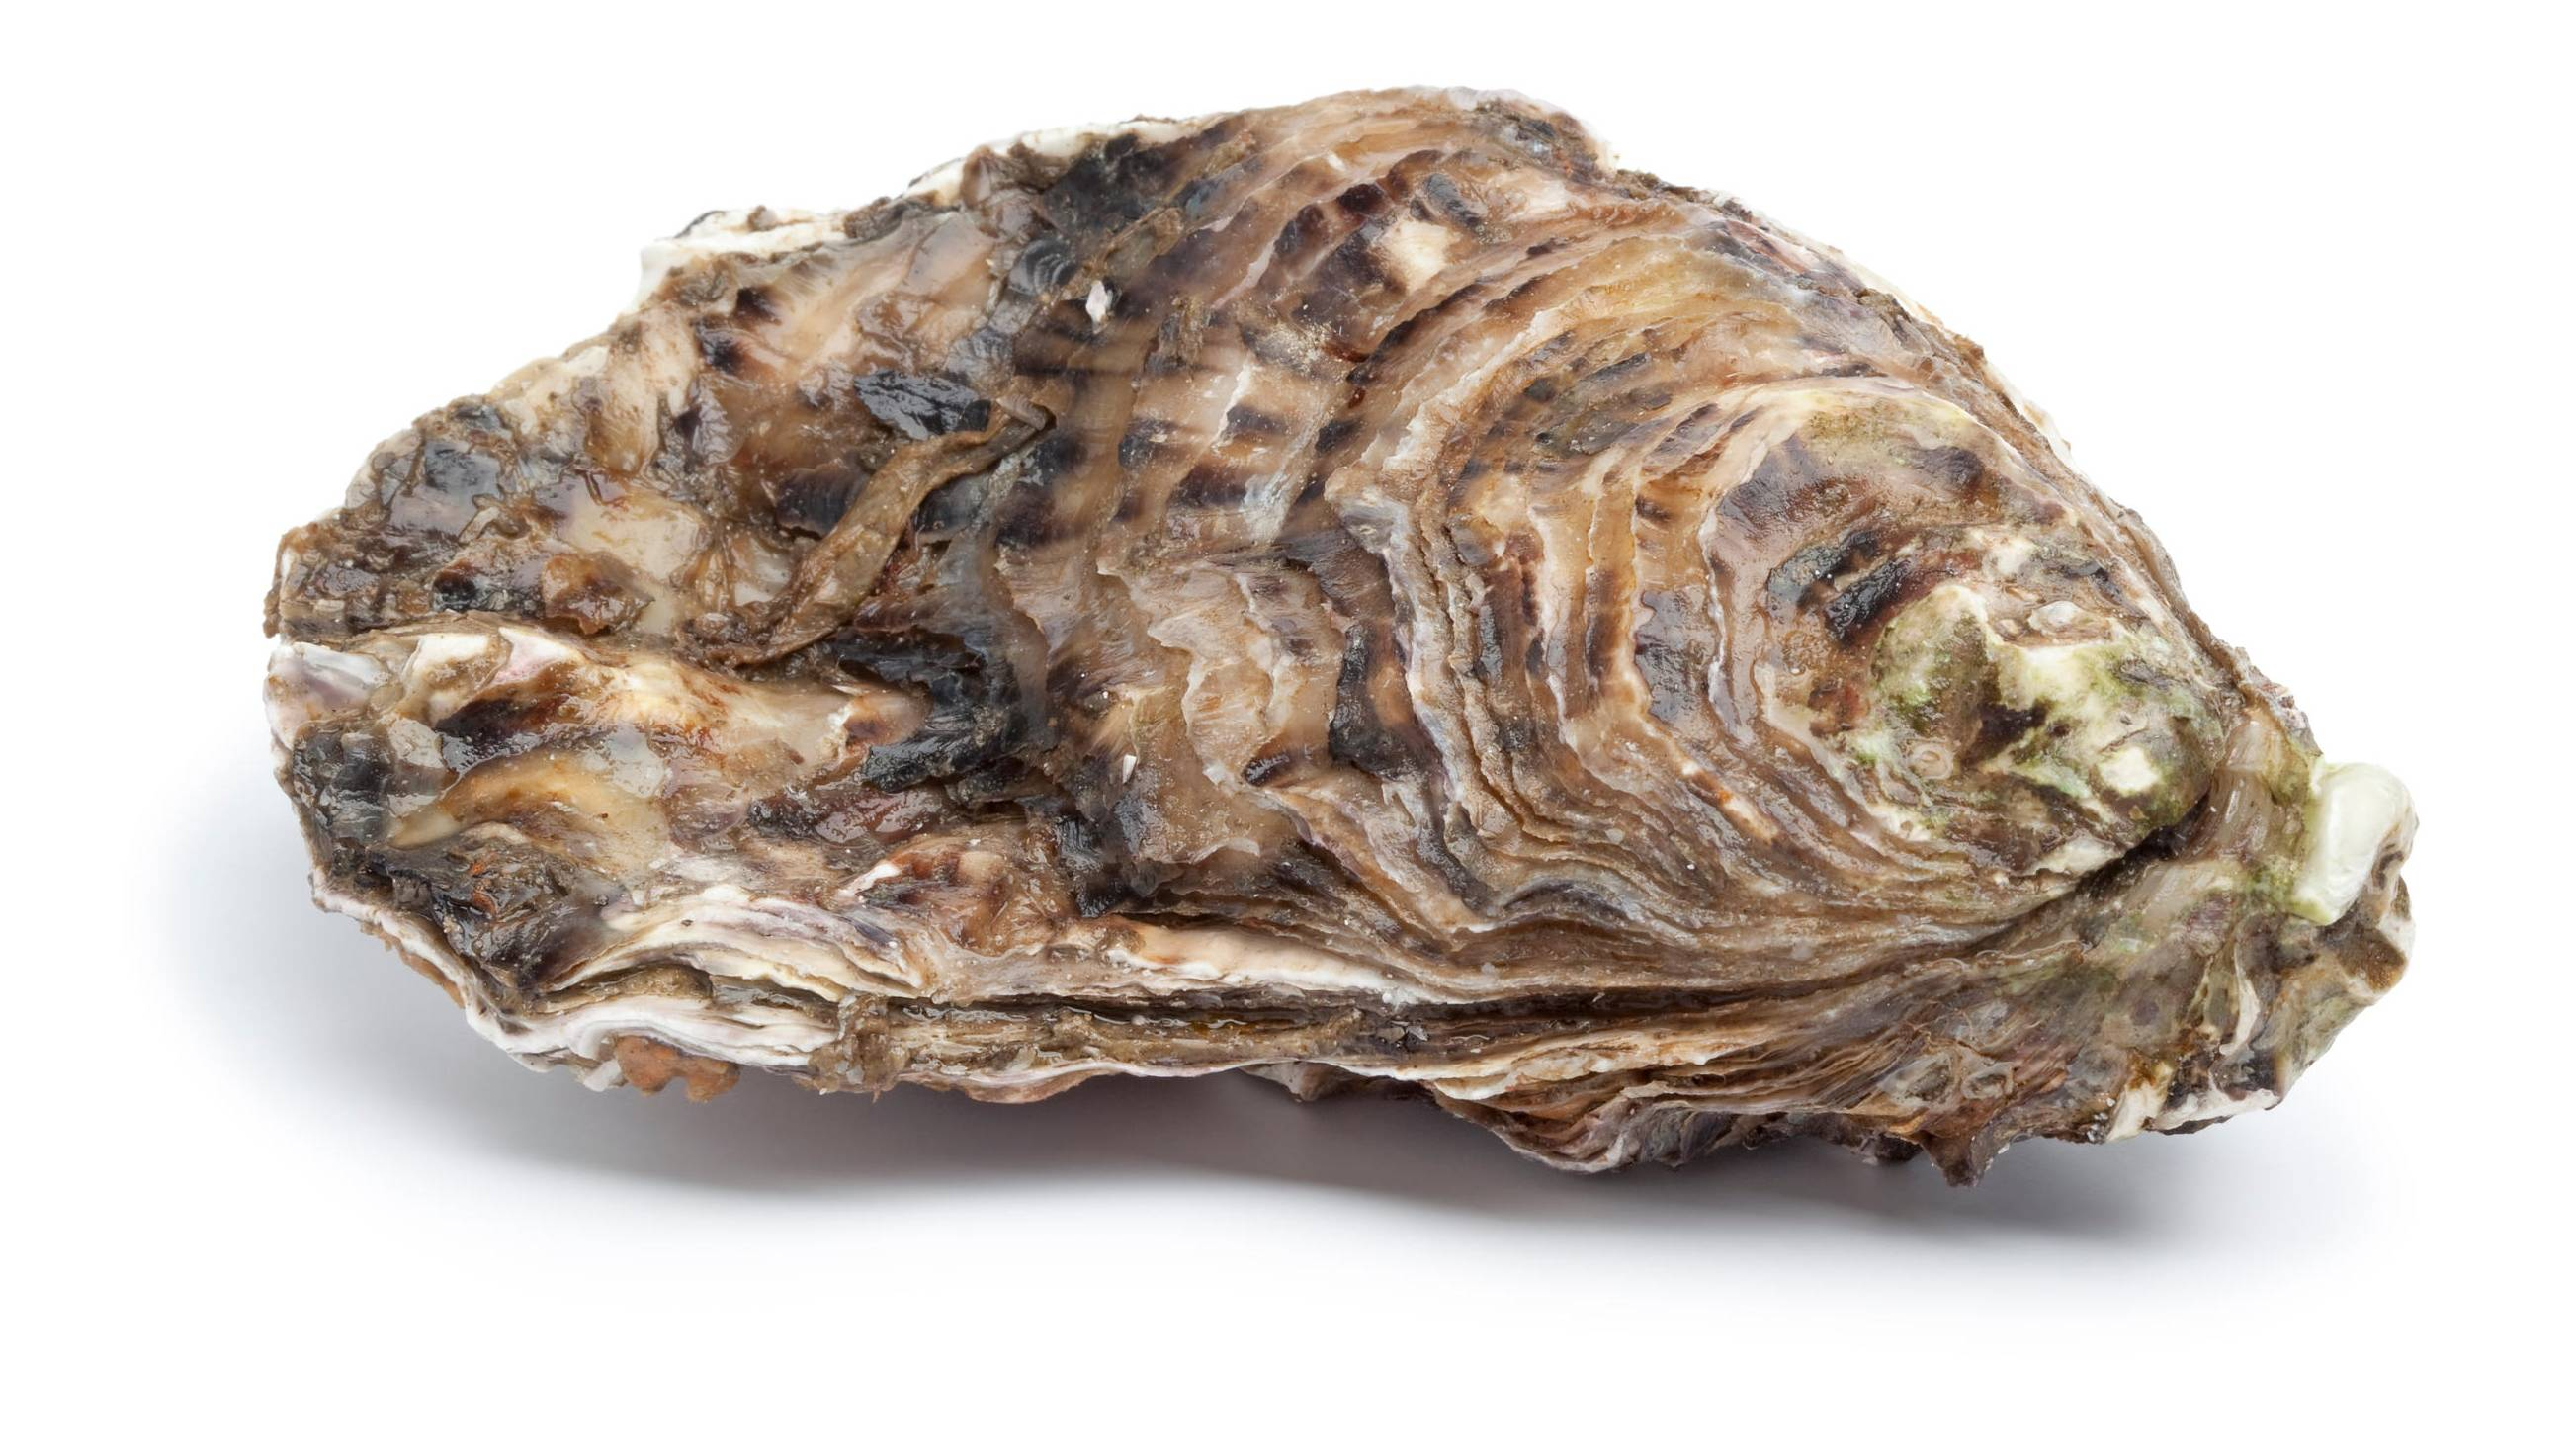 Oesters Seizoen Zeeuwse Of Japanse Oesters (creuse) | Qualimer | Qualimer